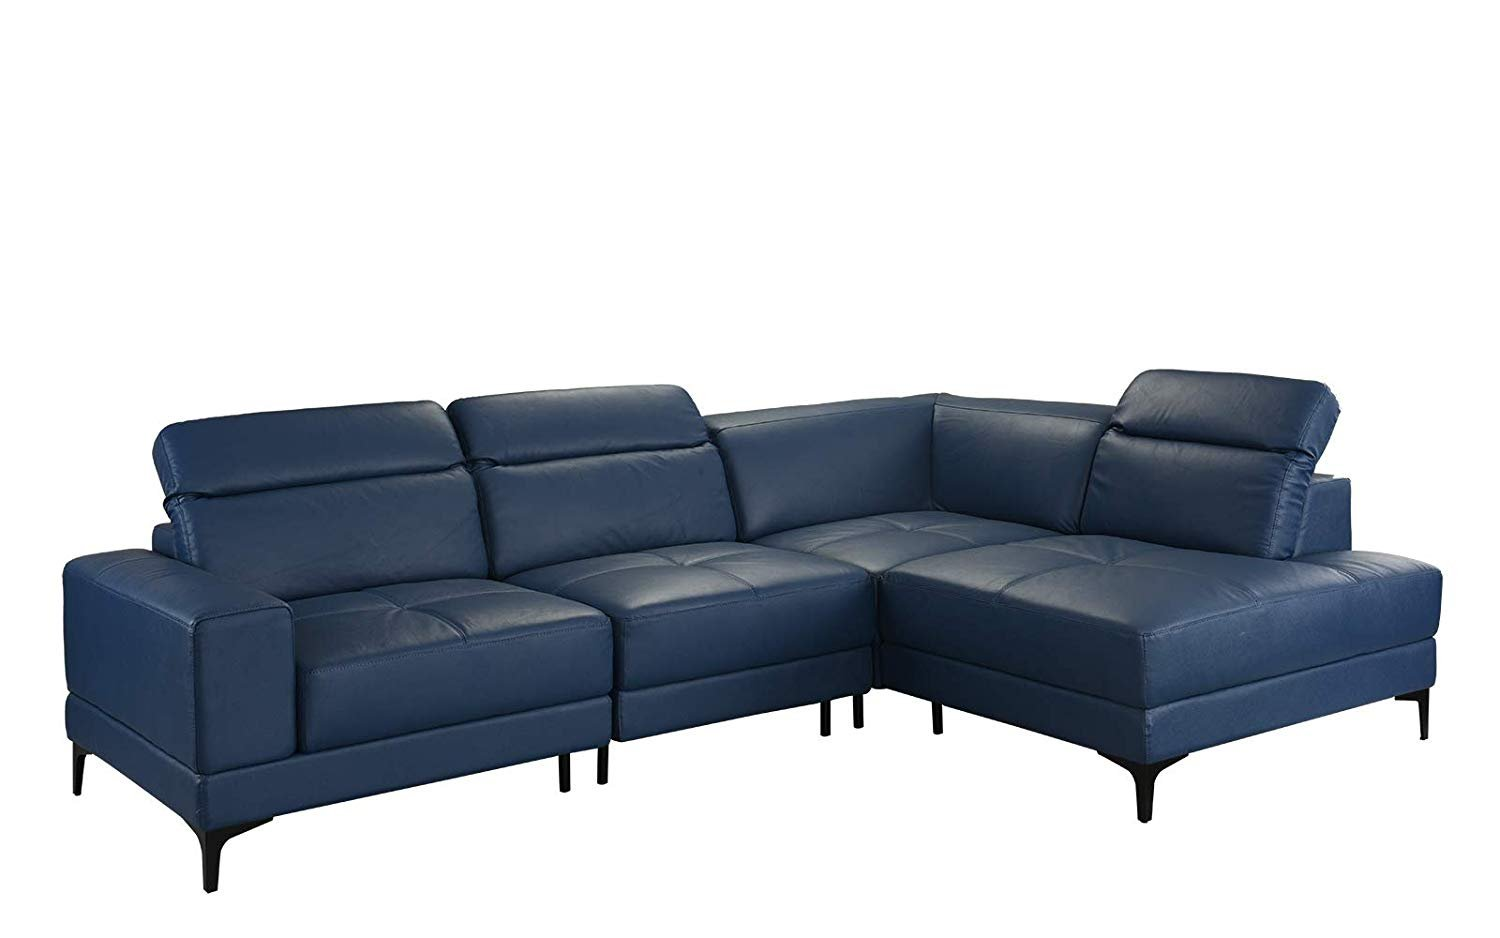 Details about Large Modern Leather Sectional Sofa, Adjustable Living Room  L-Shape Couch (Blue)